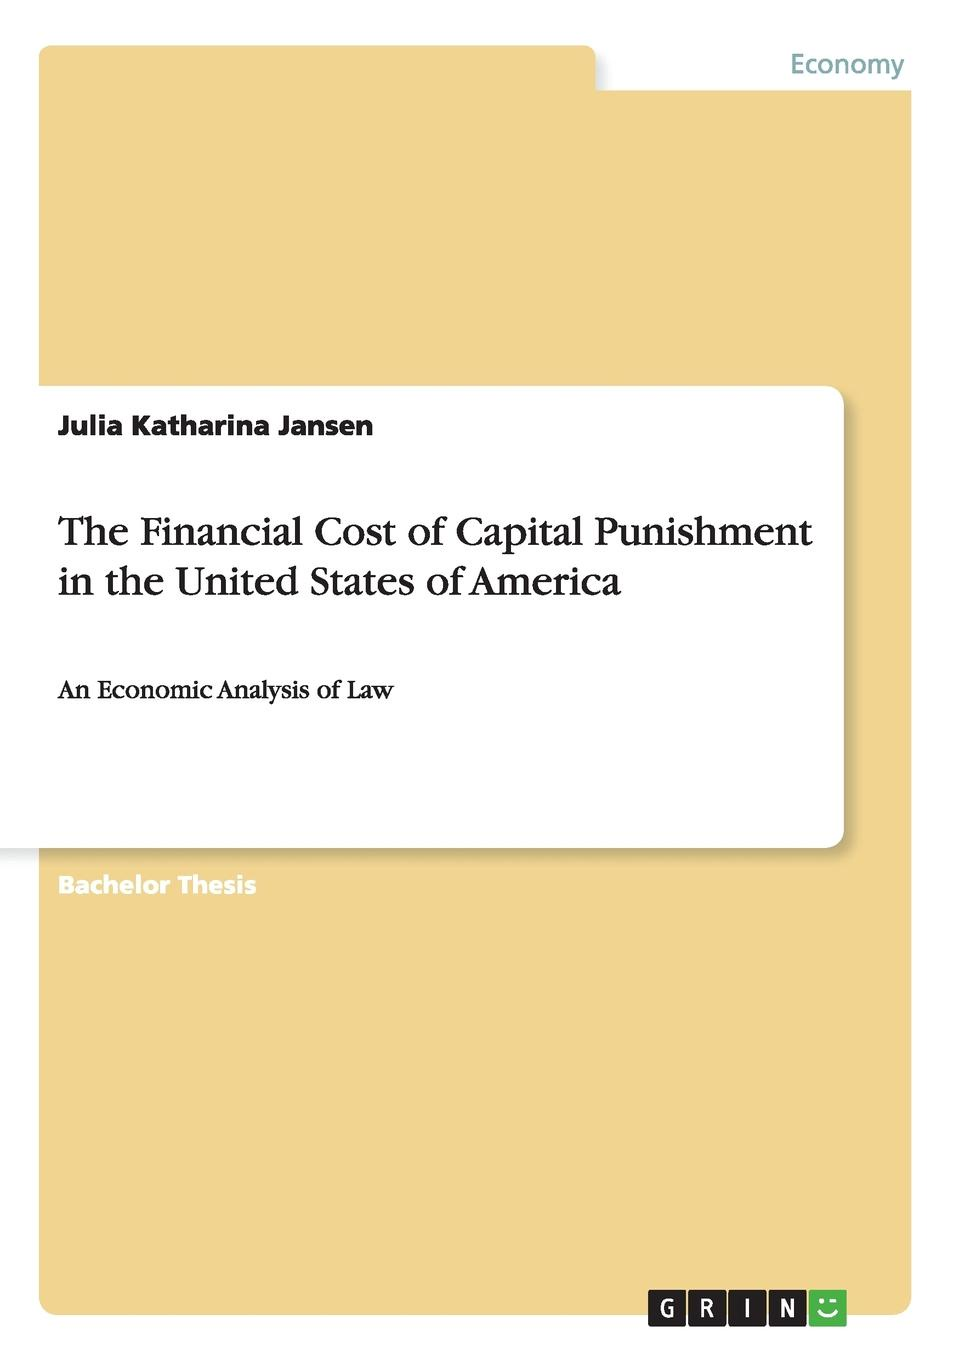 Julia Katharina Jansen The Financial Cost of Capital Punishment in the United States of America uv spot printing on single side of paper business cards the item is only for uv spot fee don t include the cost of paper